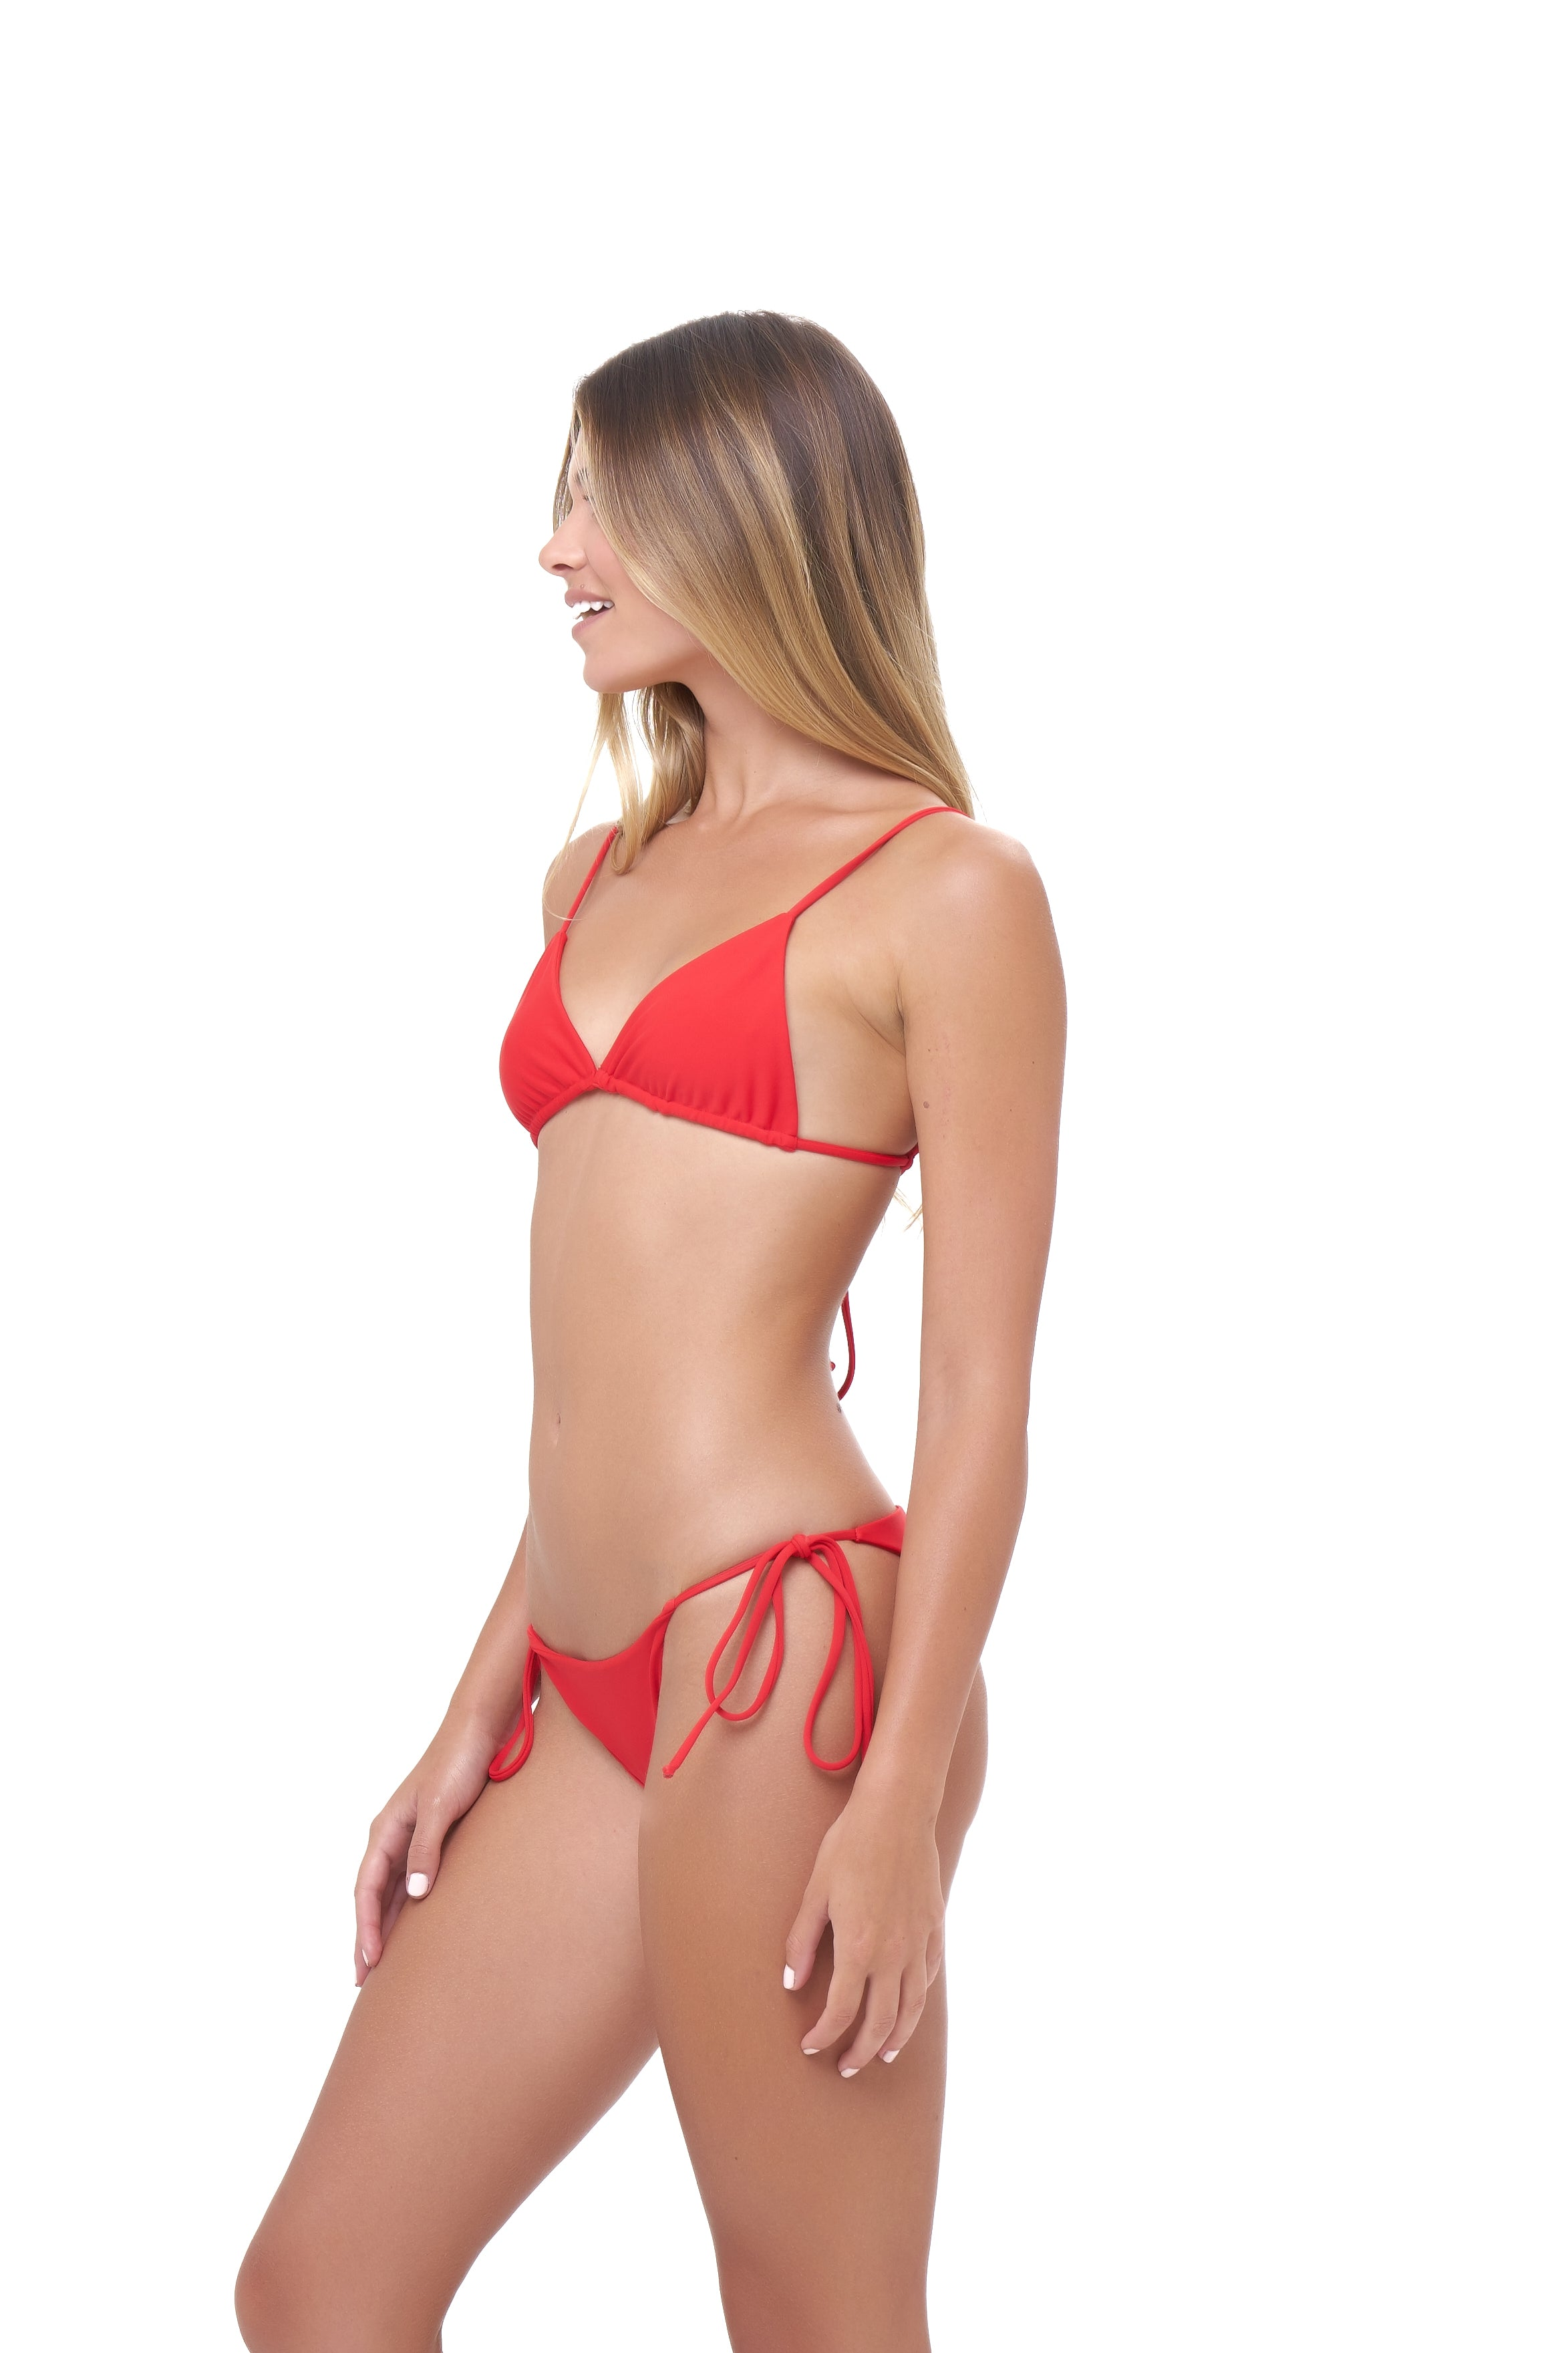 Storm Swimwear - Formentera - Tie Side Bikini Bottom in Scarlet